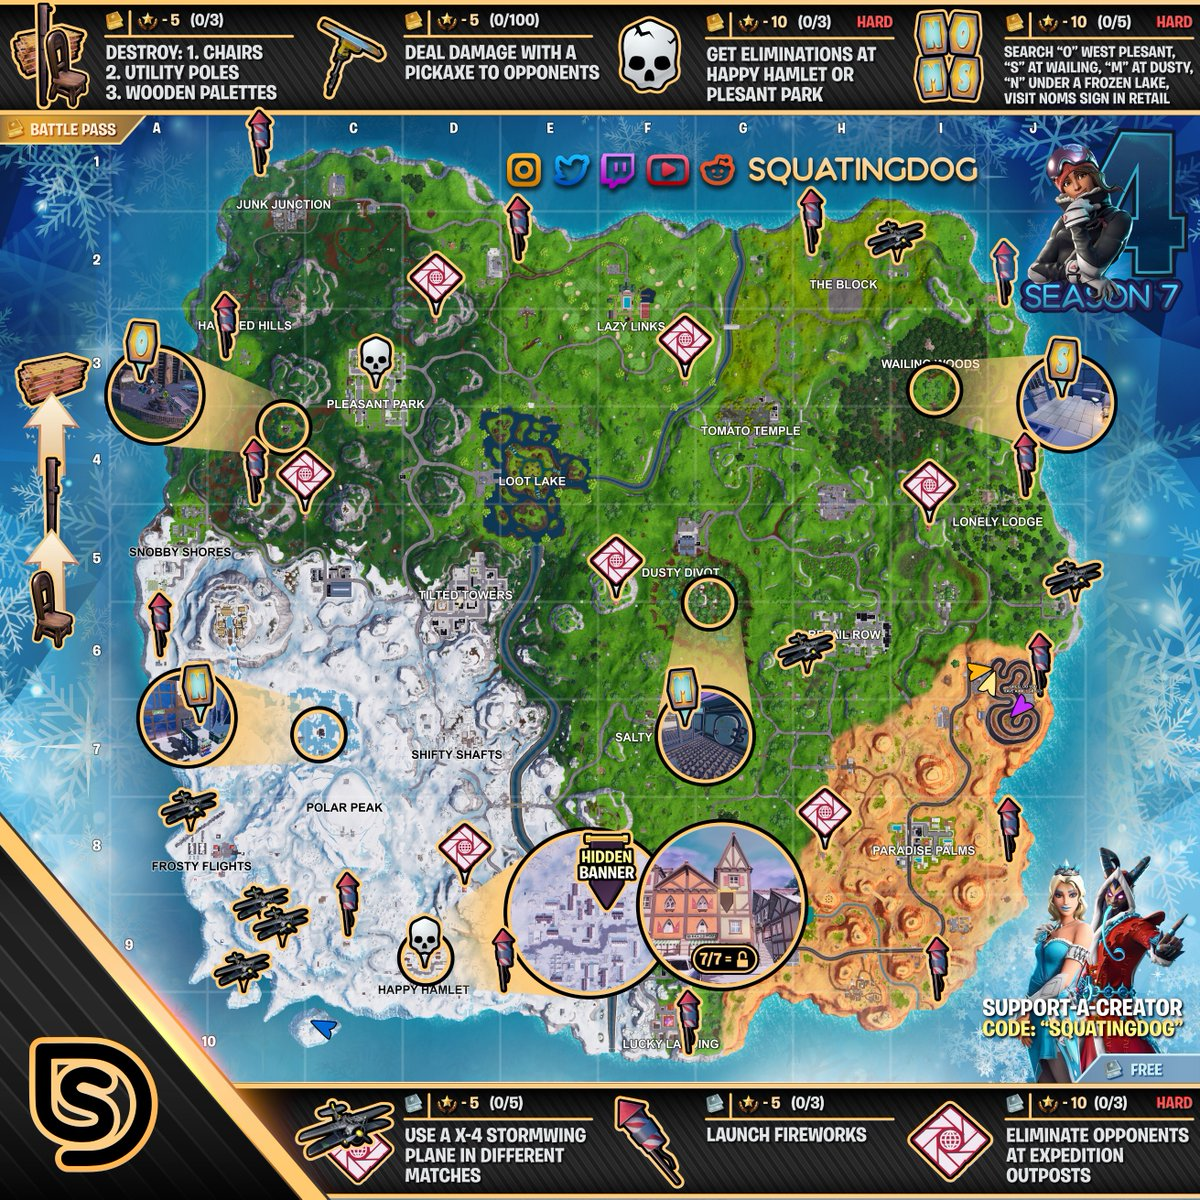 fortnite cheat sheet map for season 7 week 4 - mapa de fortnite temporada 2